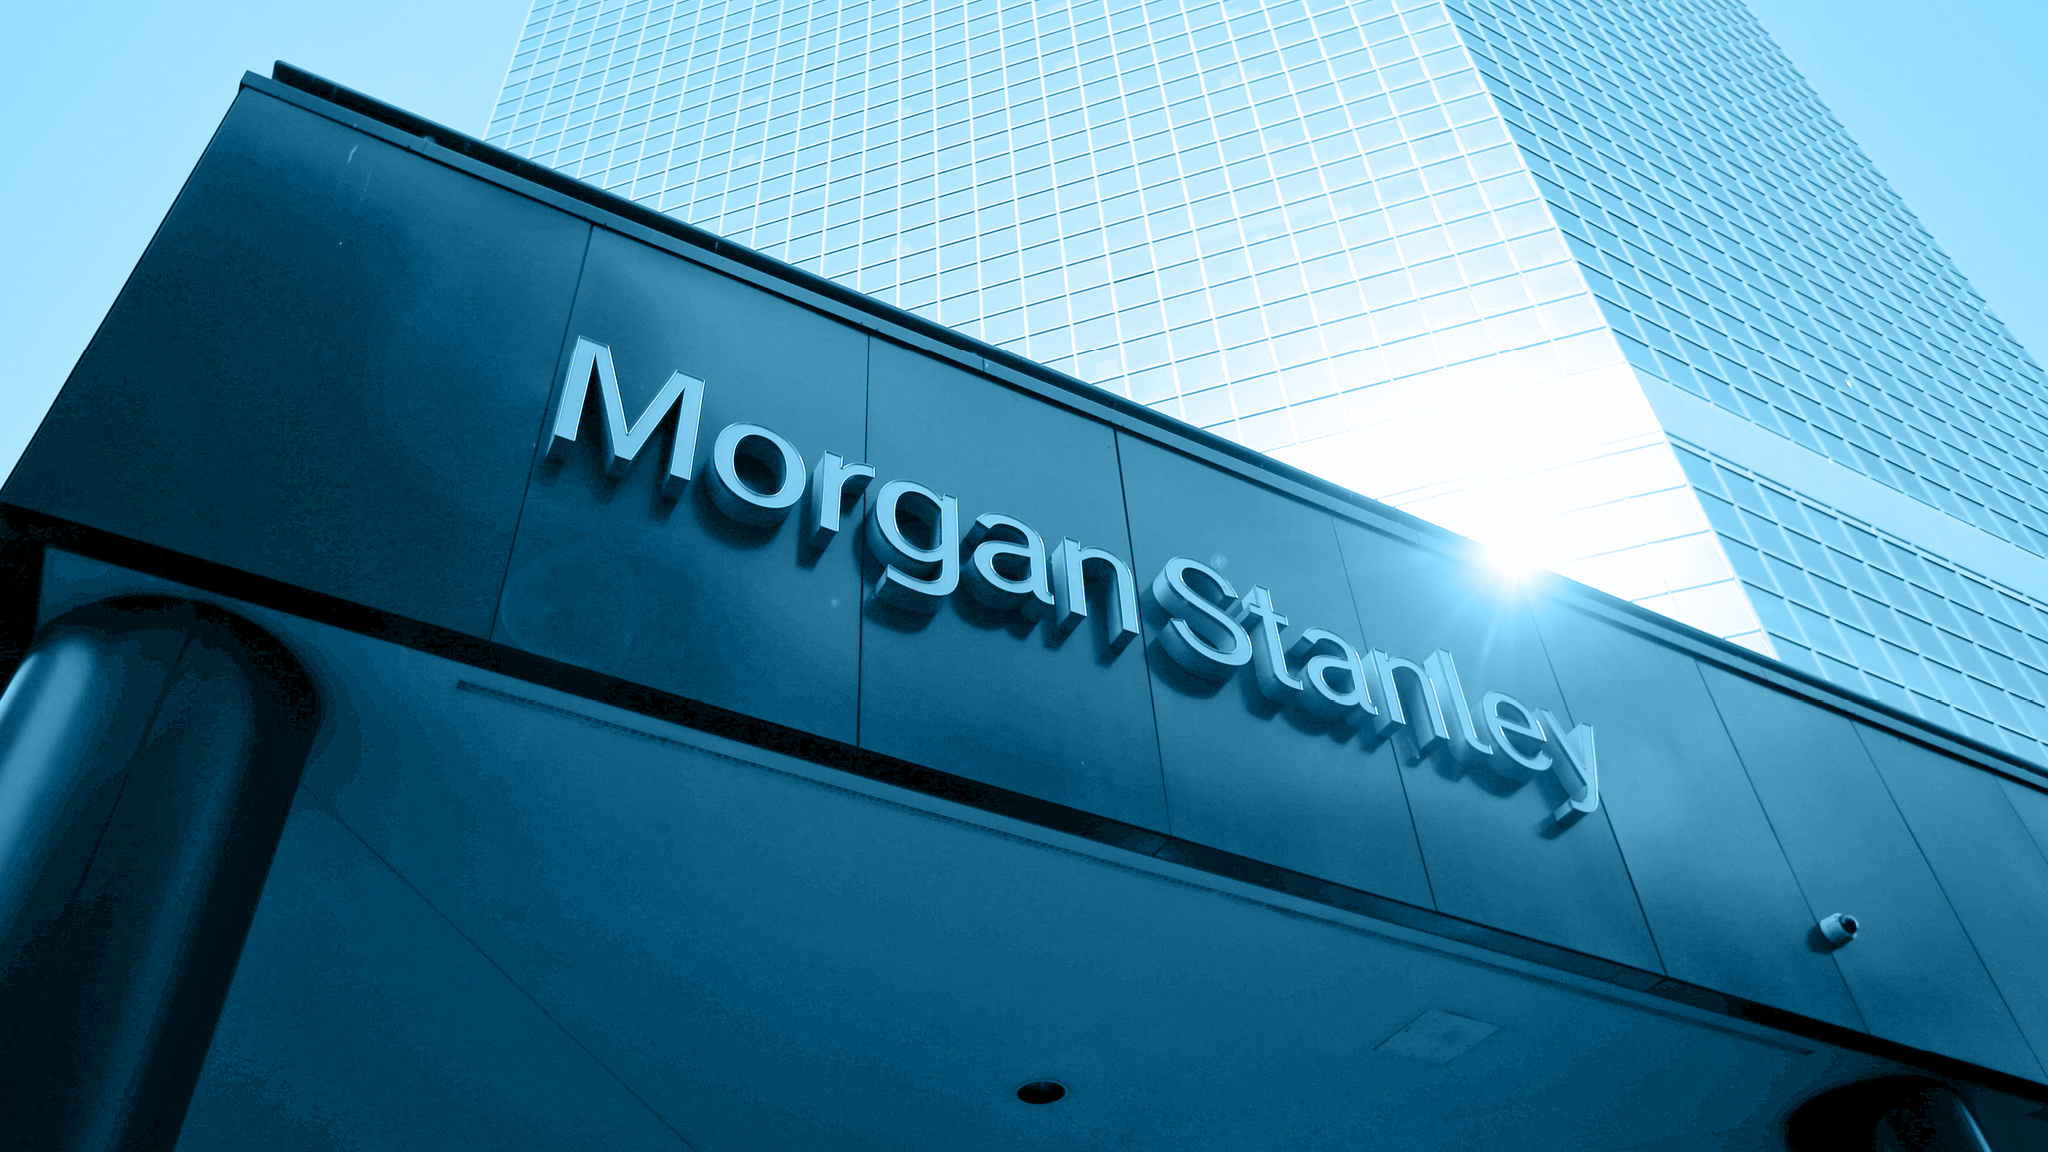 Morgan Stanley's rising star moves closer to top job